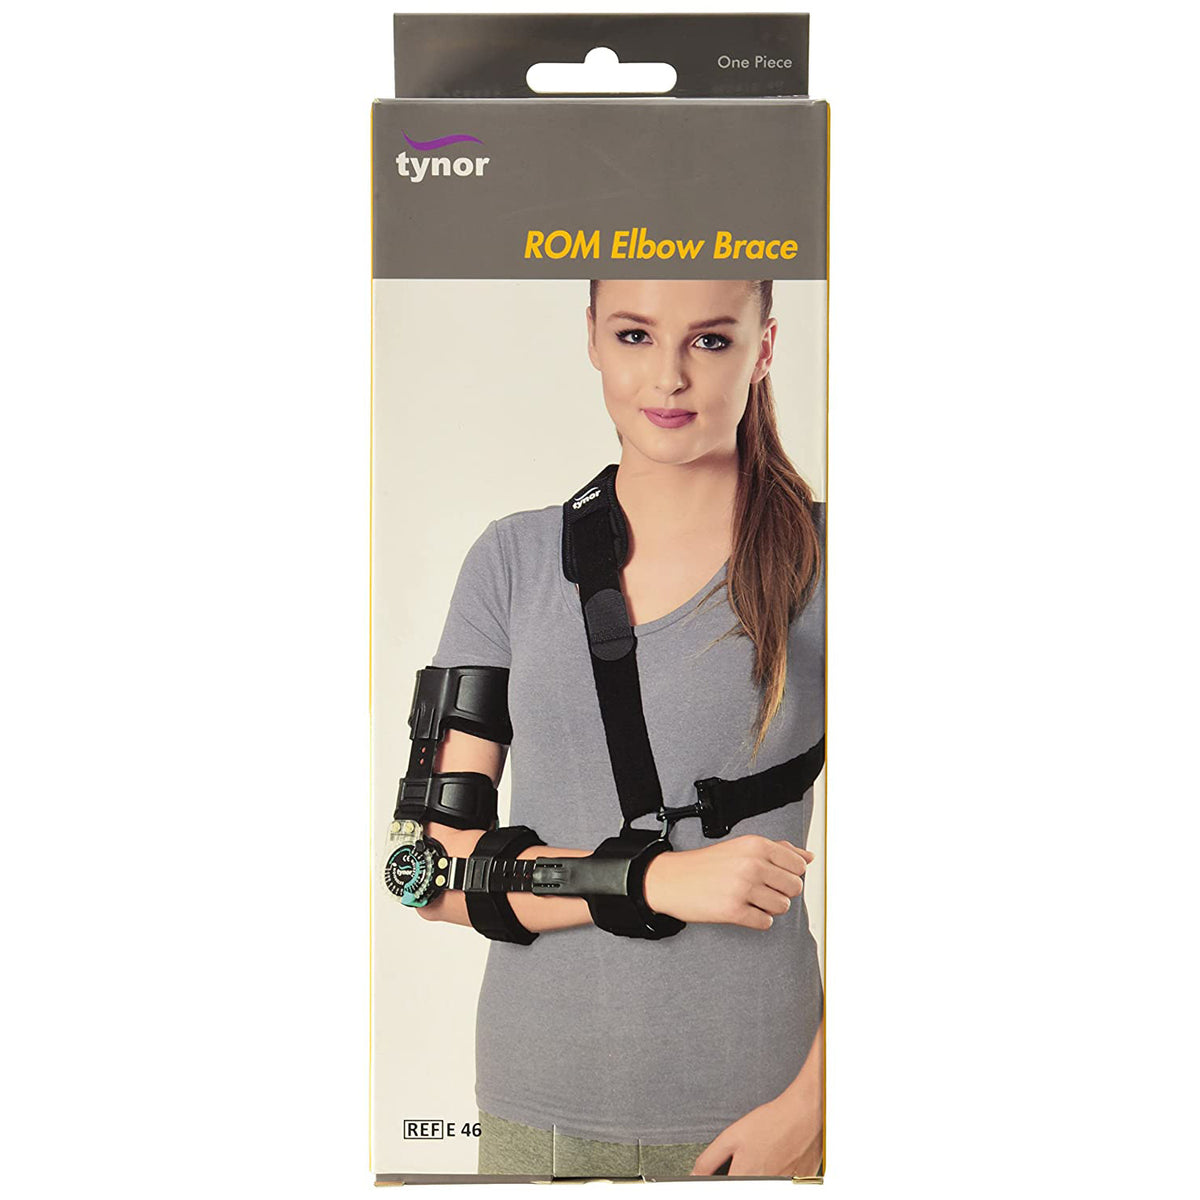 ROM (Range Of Motion)  Elbow Brace